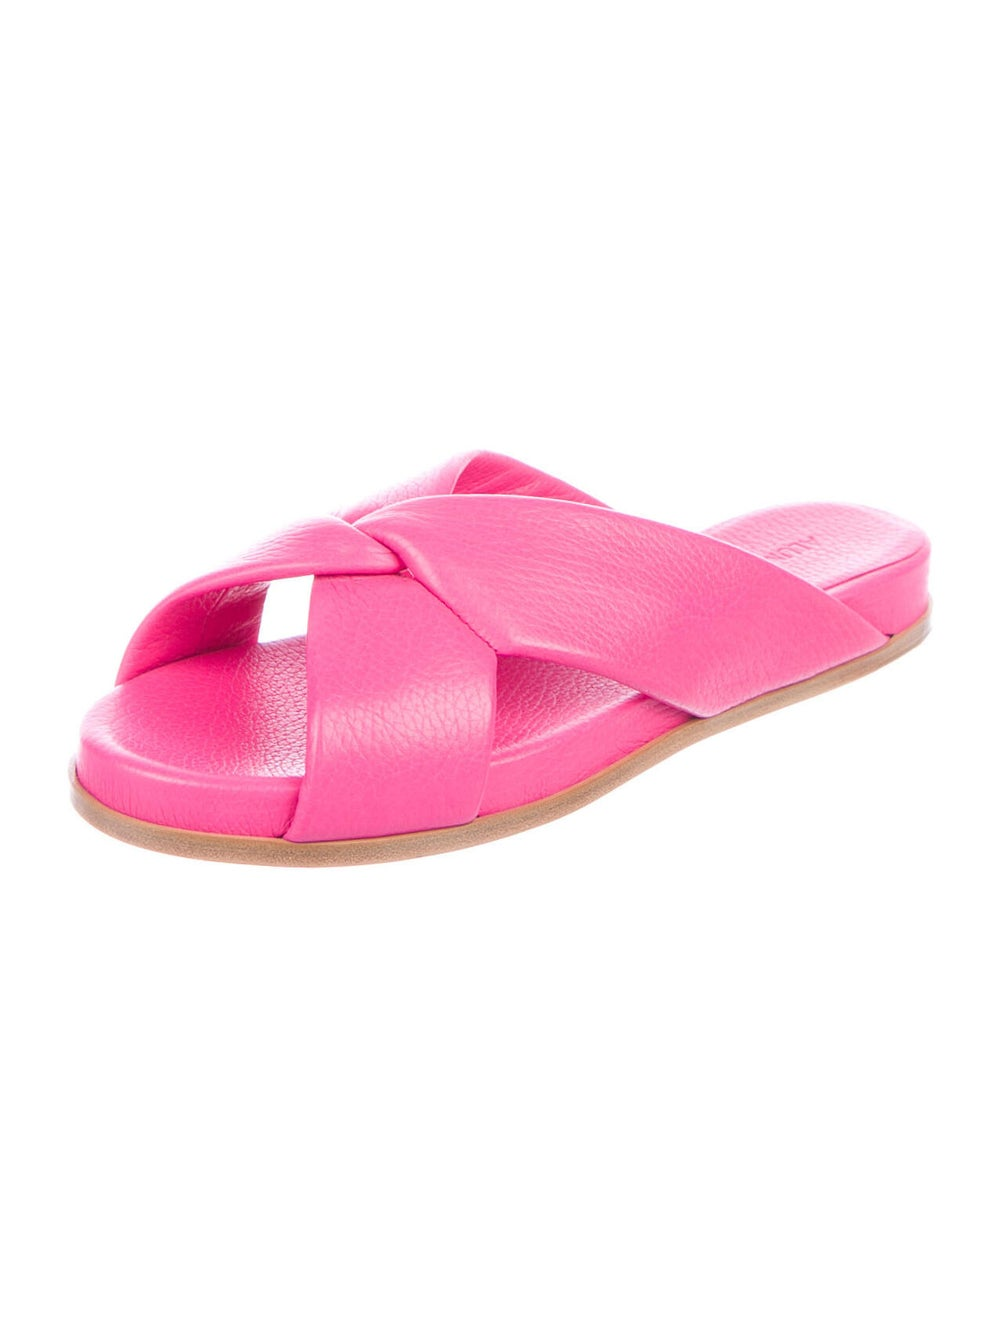 Alumnae Leather Slides Pink - image 2